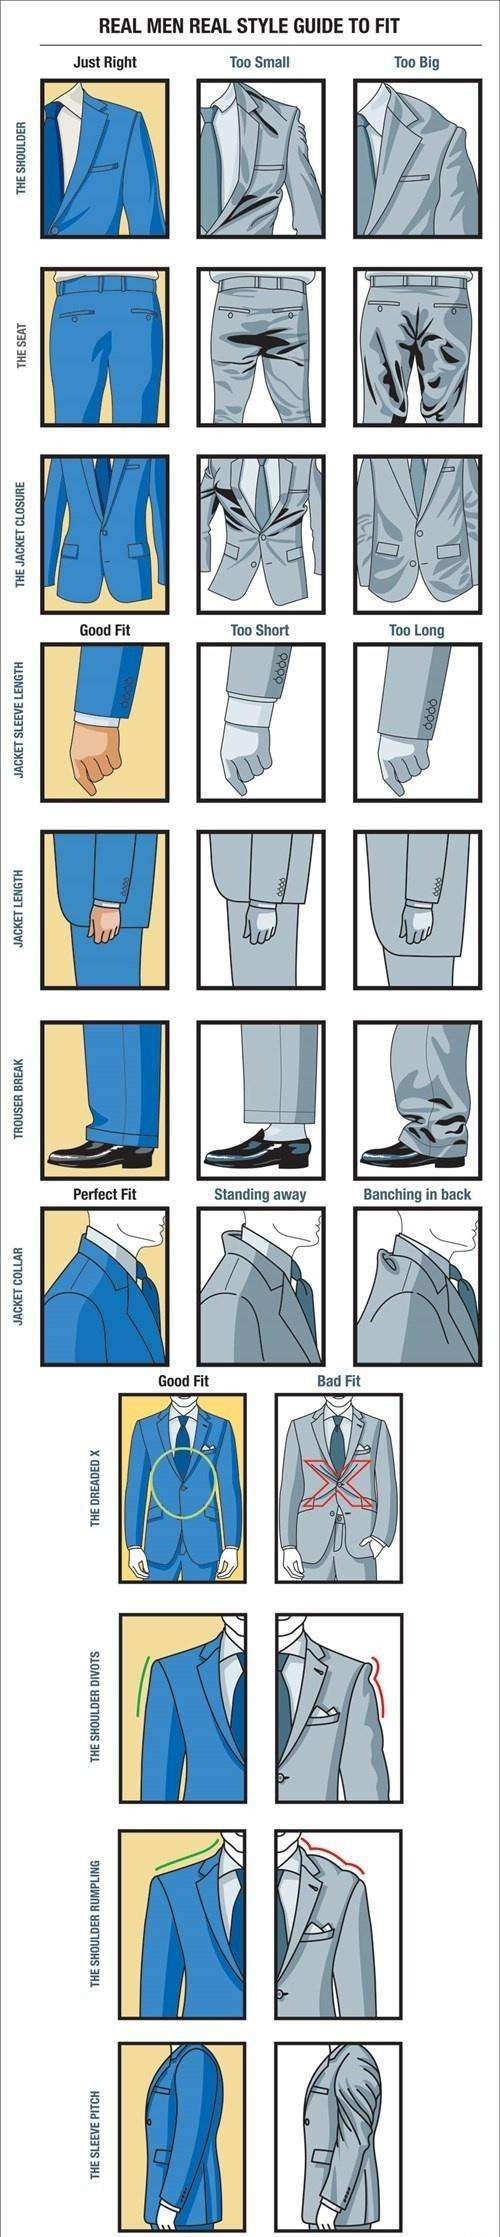 Never Second Guess His Size Again Use This Comprehensive Fit Guide